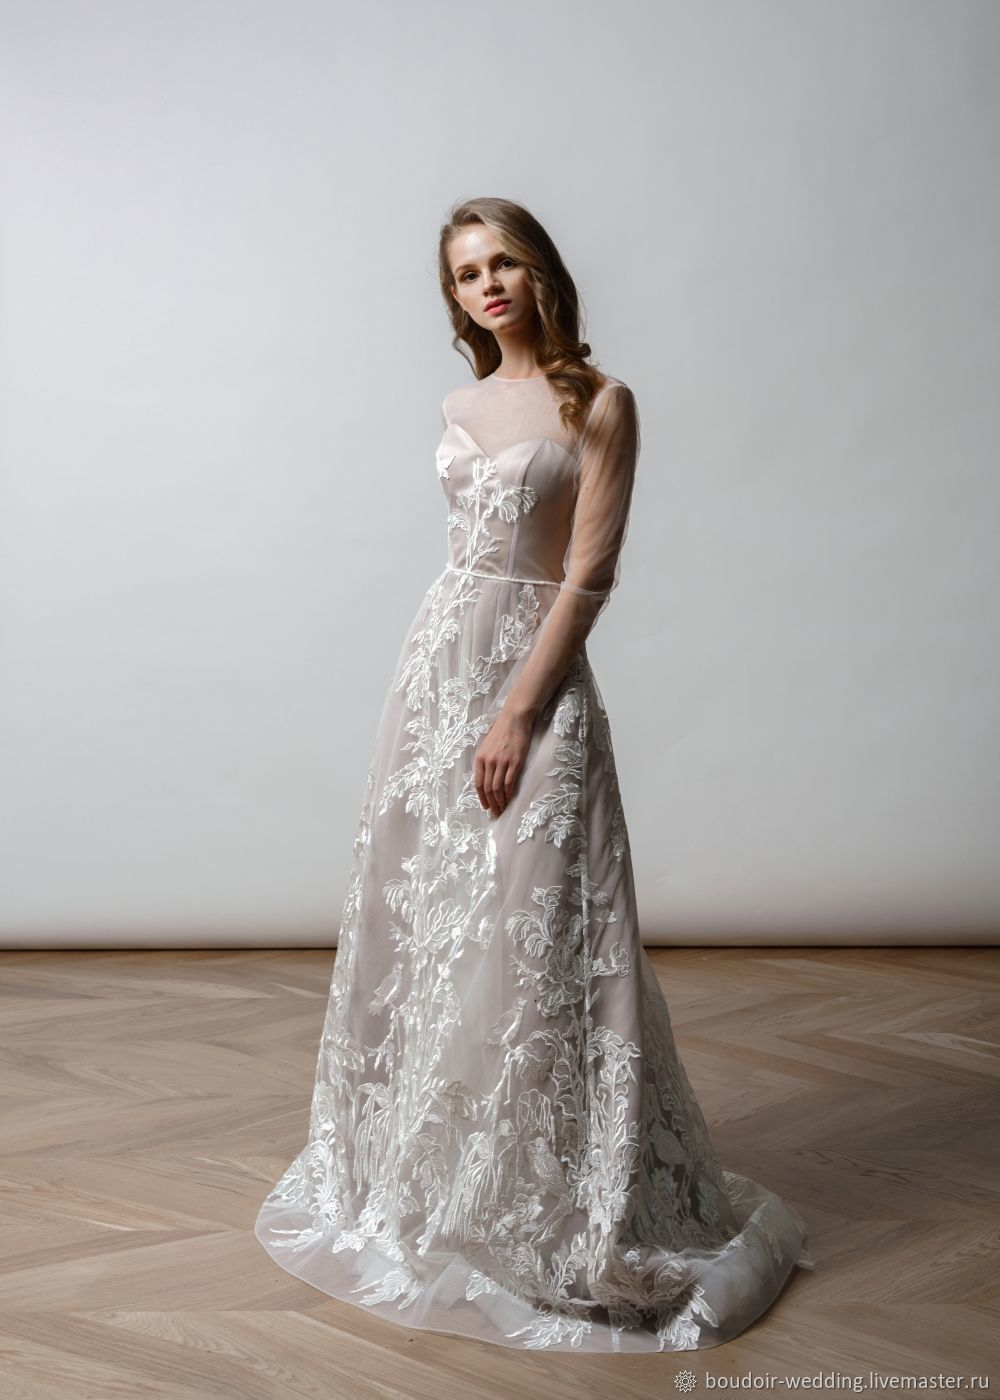 Unusual Two Tone Wedding Dress Is Made Of Flying Tulle And Floral  Embroidery.